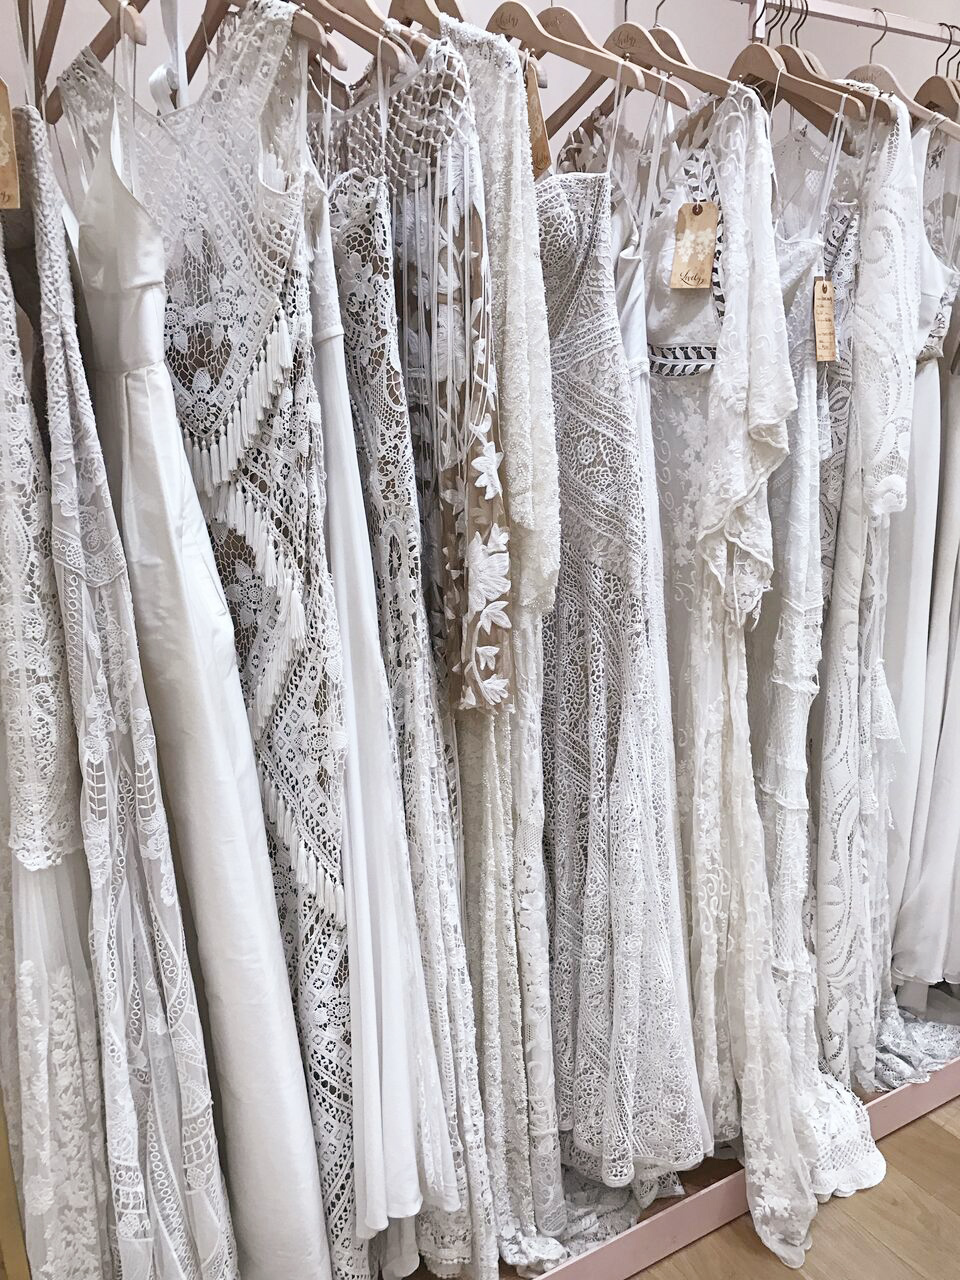 bridal dresses on rack